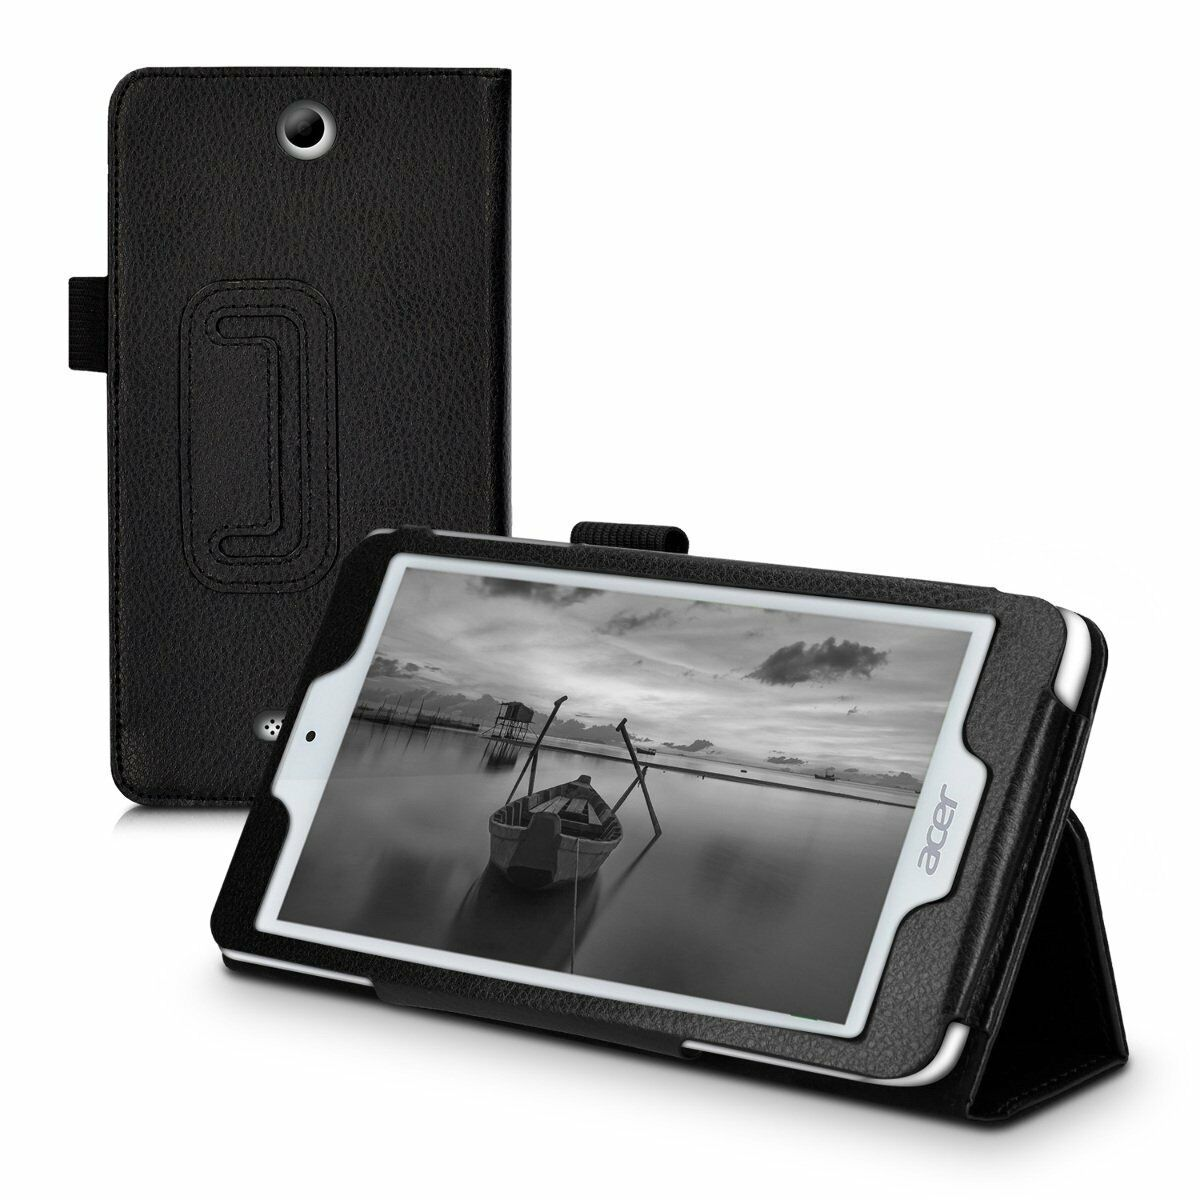 Image of Tablethutbox Slim Smart Cover Case For Acer Iconia One 7 B1-780 / B1-790 Case